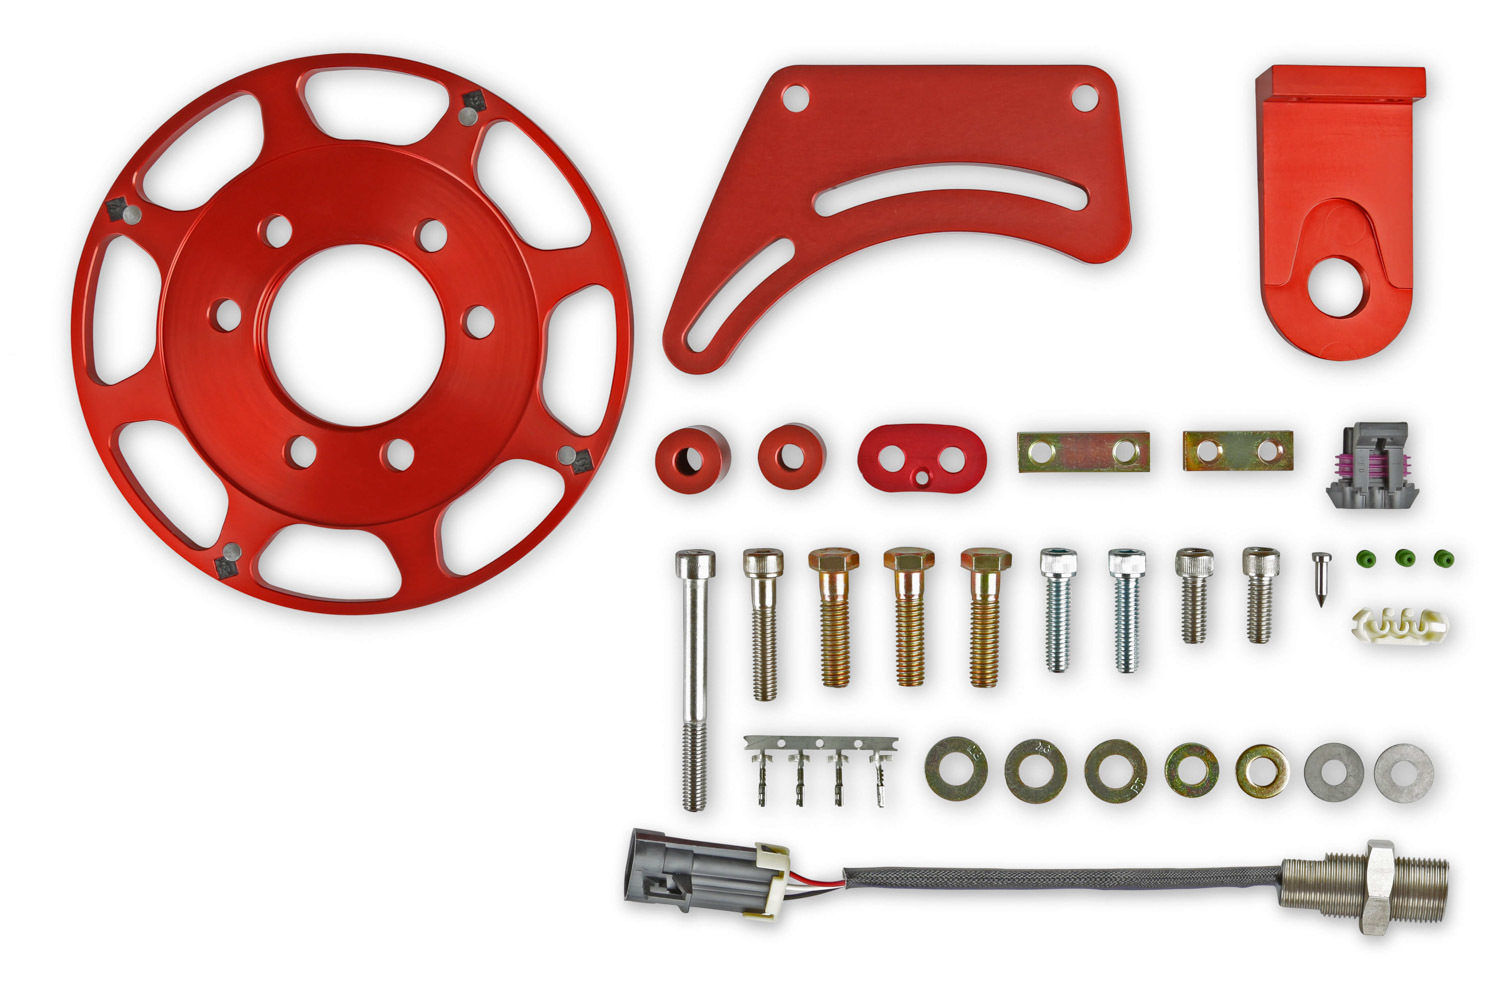 Msd Ignition Crank Trigger Kit - Ford 5.0L Coyote